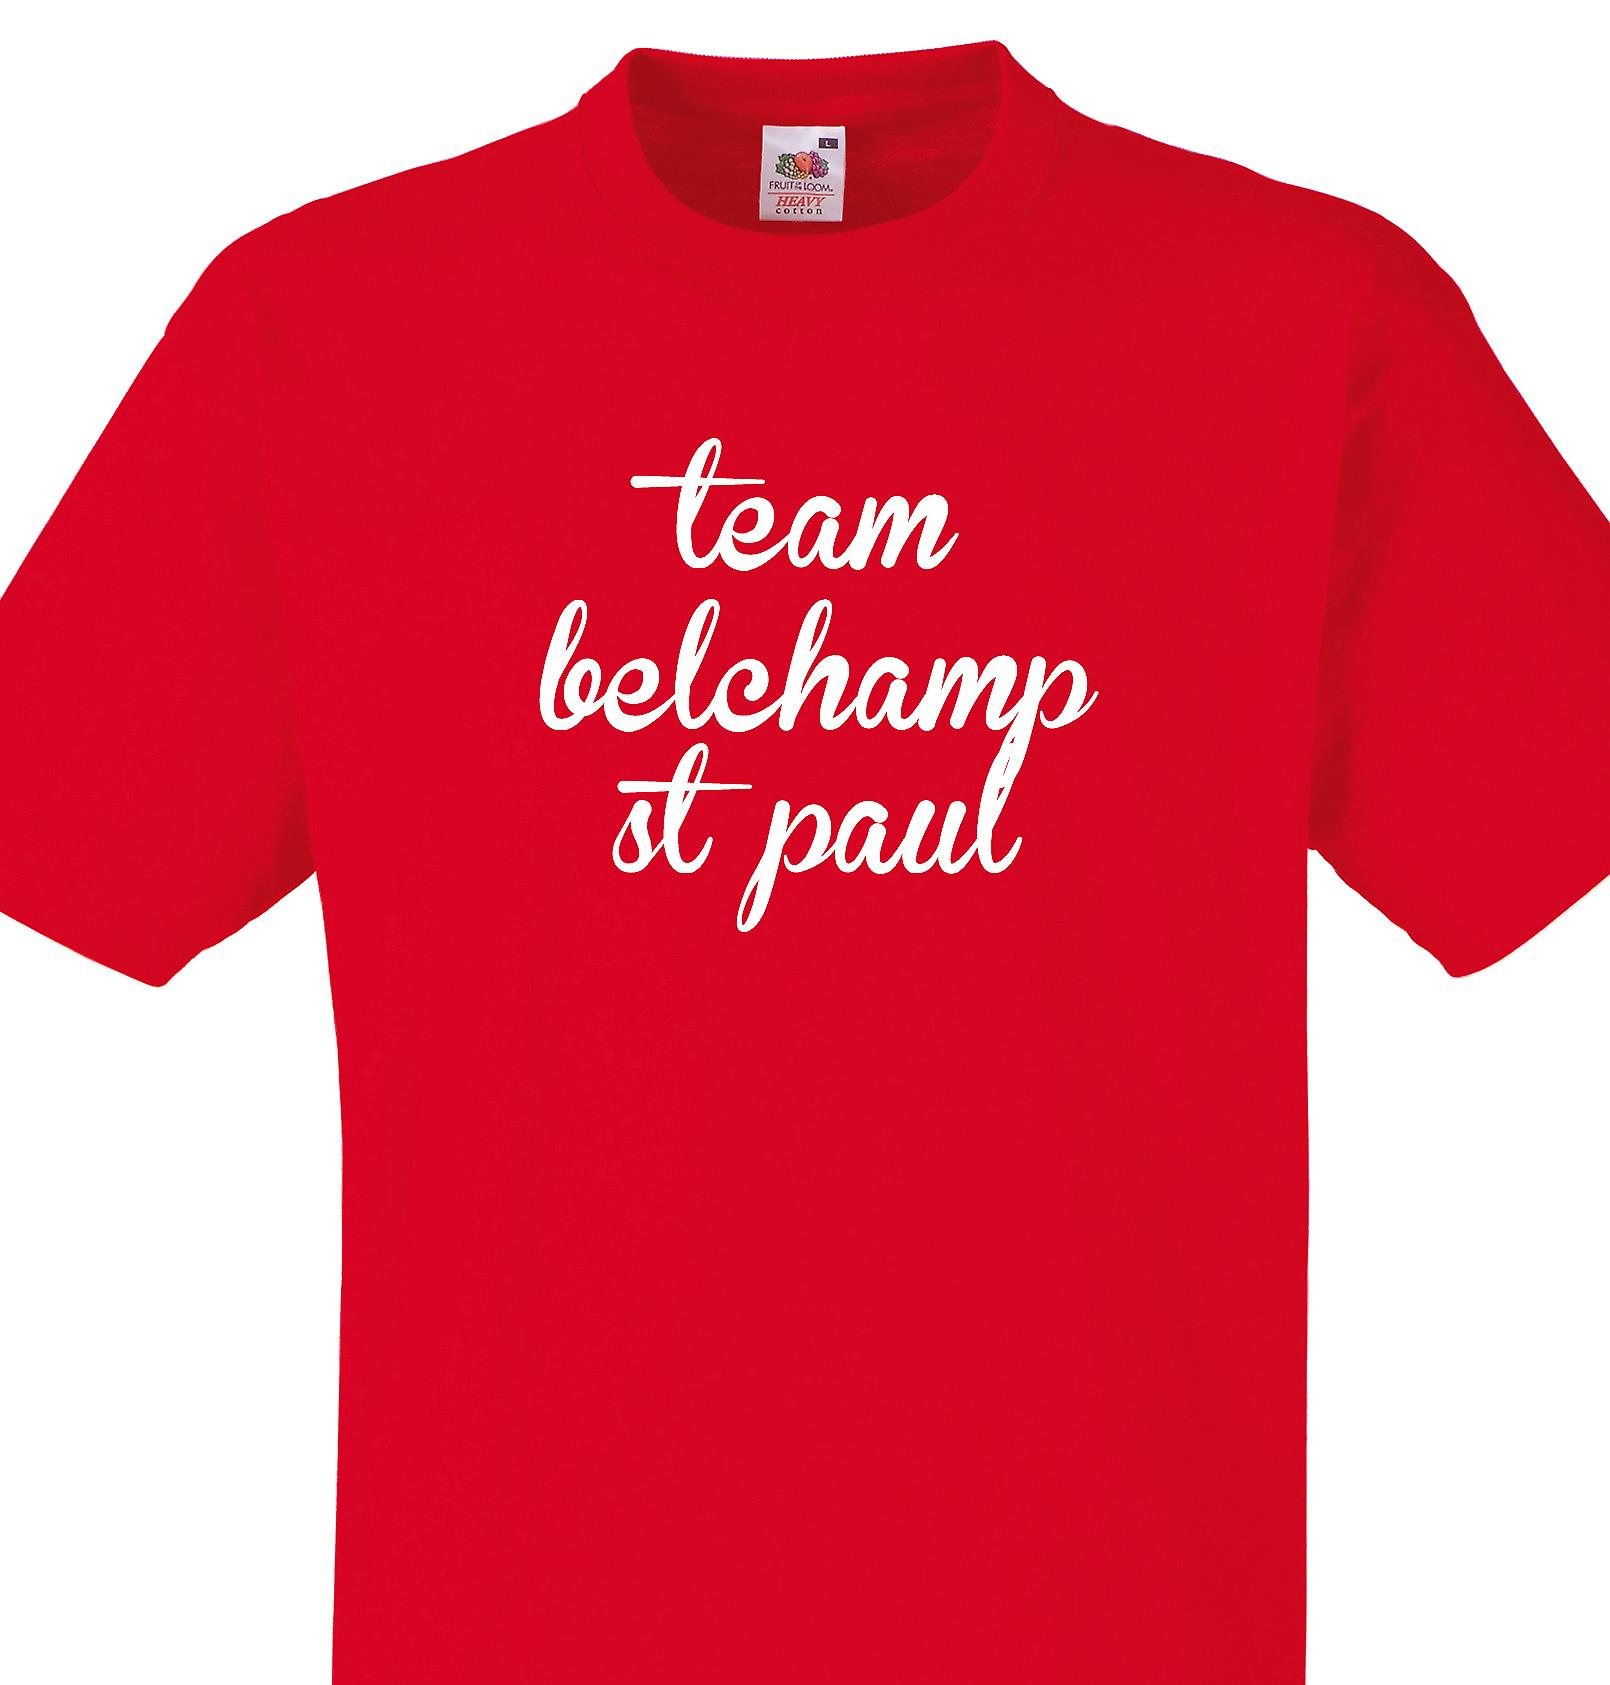 Team Belchamp st paul Red T shirt